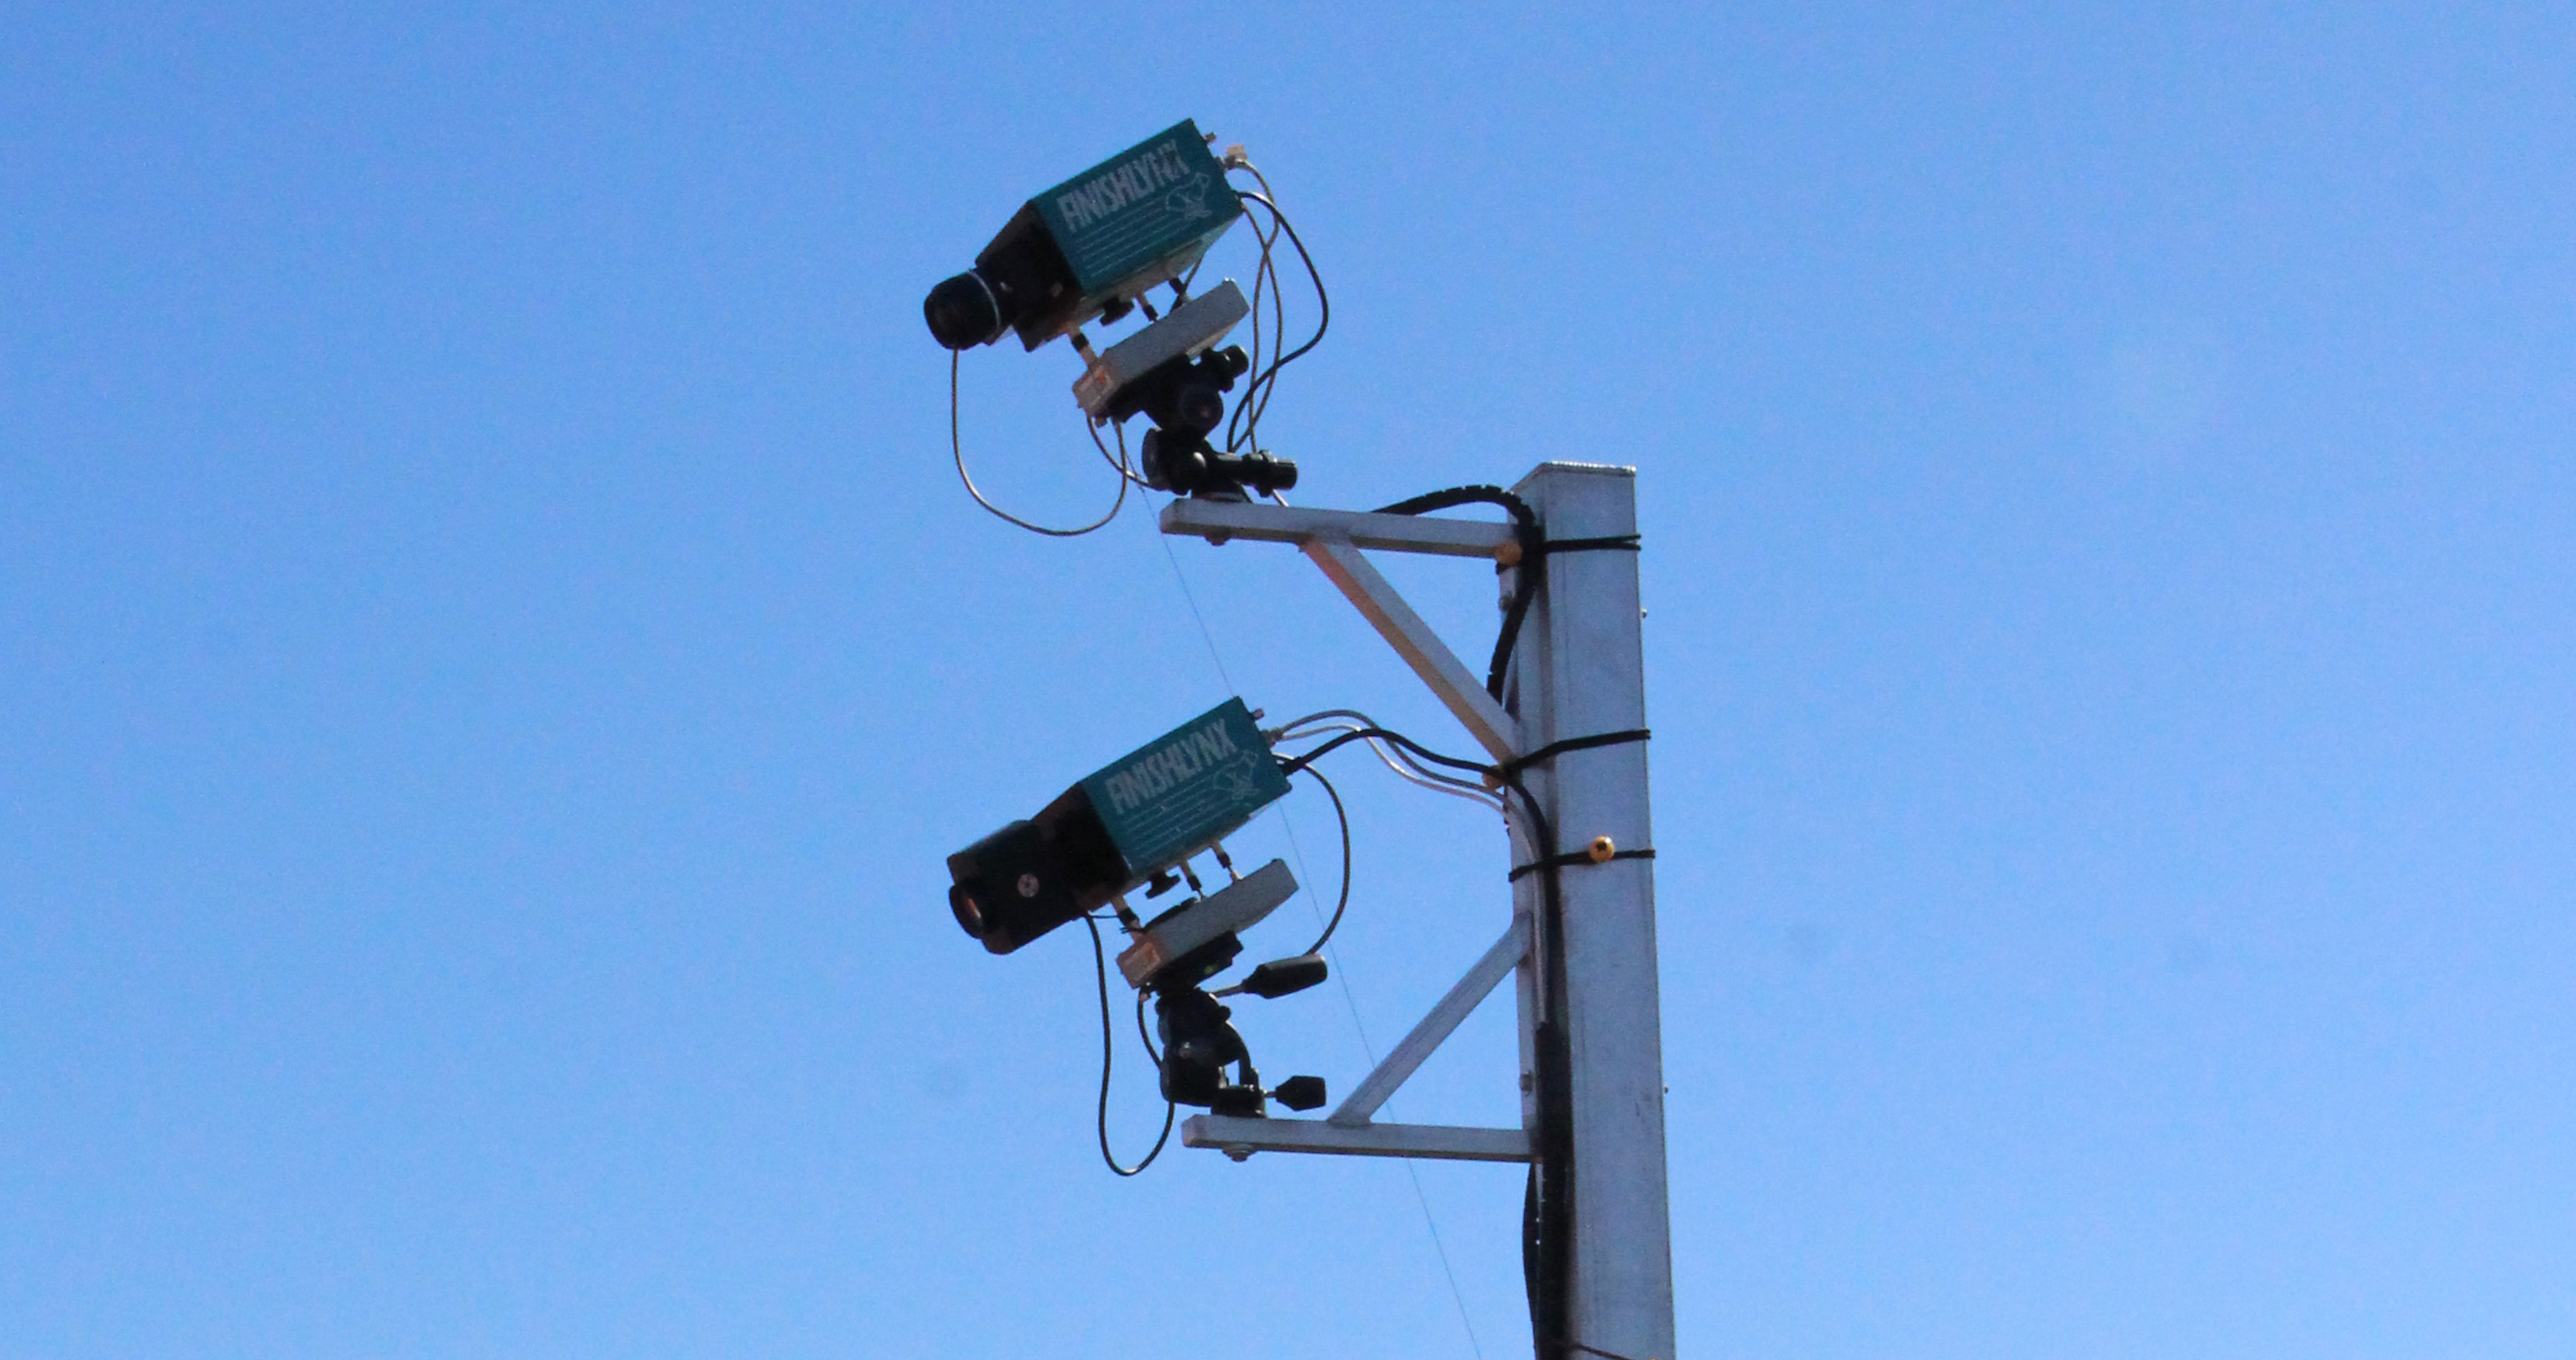 Primary and backup high speed camera